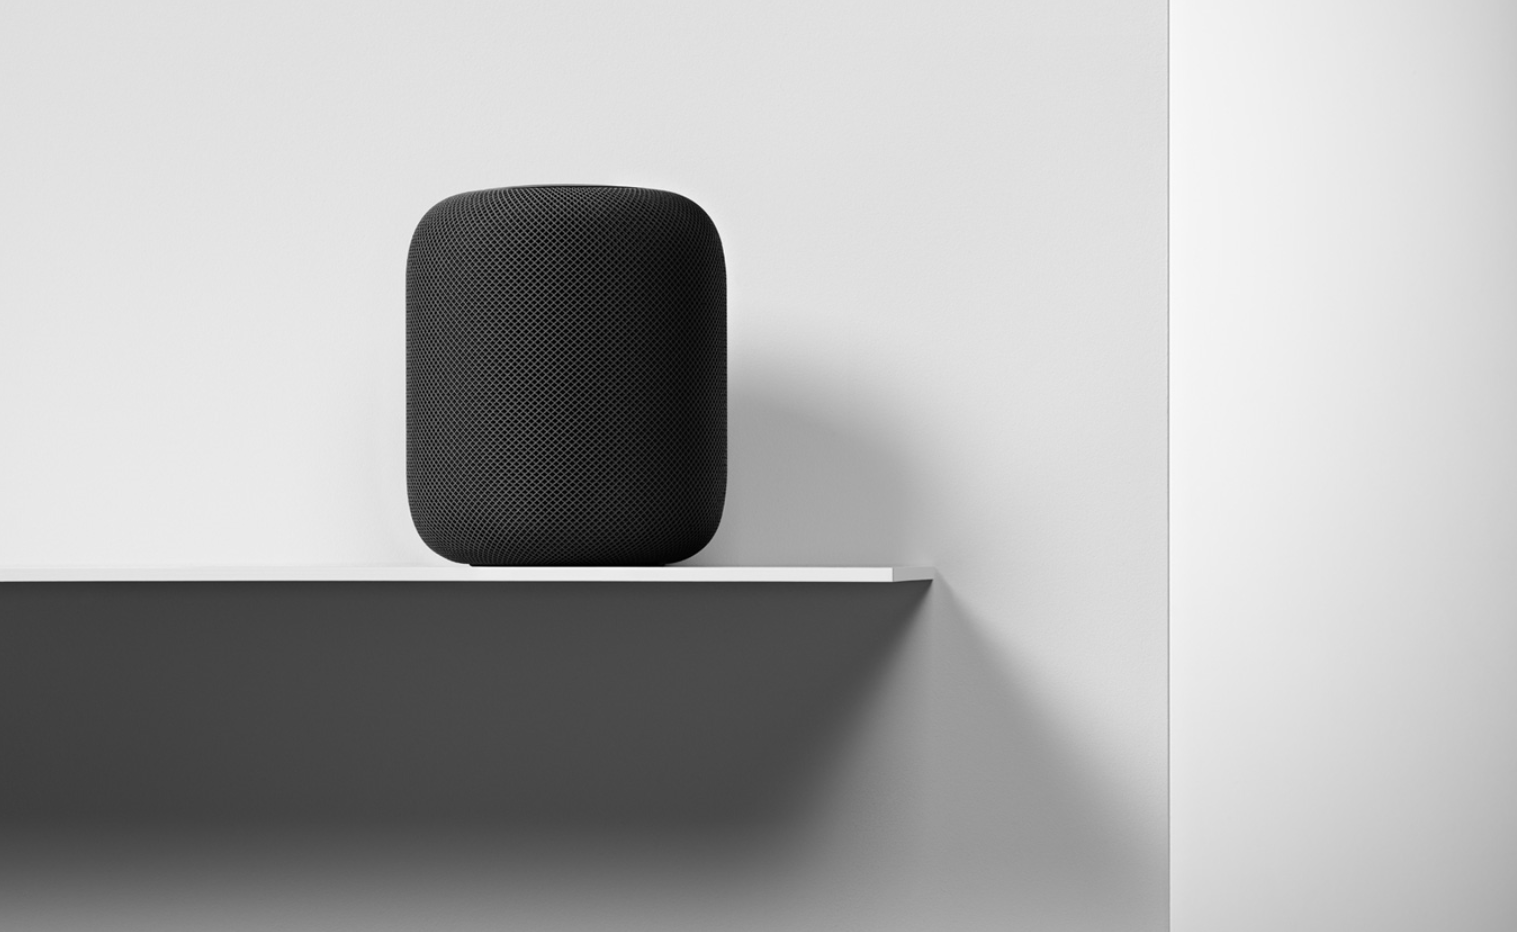 Apple HomePod could cause stains on furniture